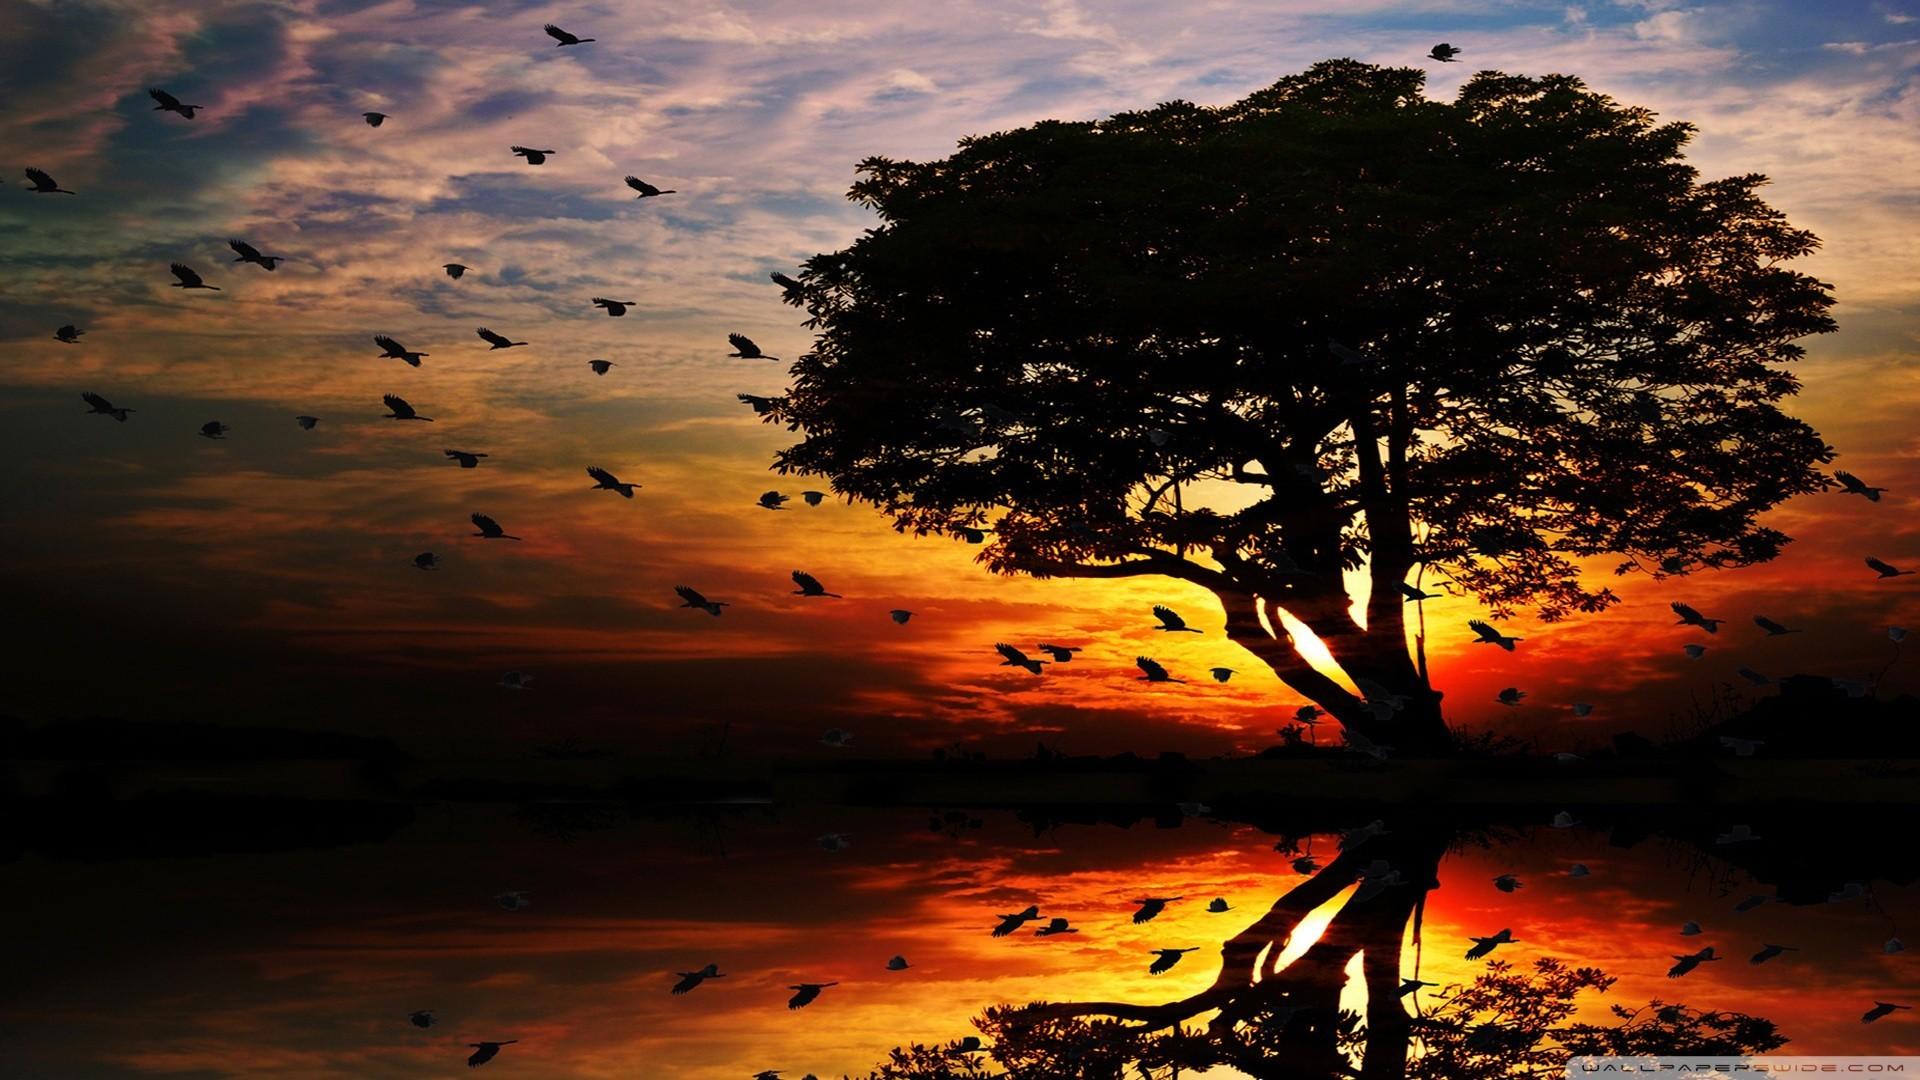 a flock of birds flying ahead the sunset wallpaper | allwallpaper.in